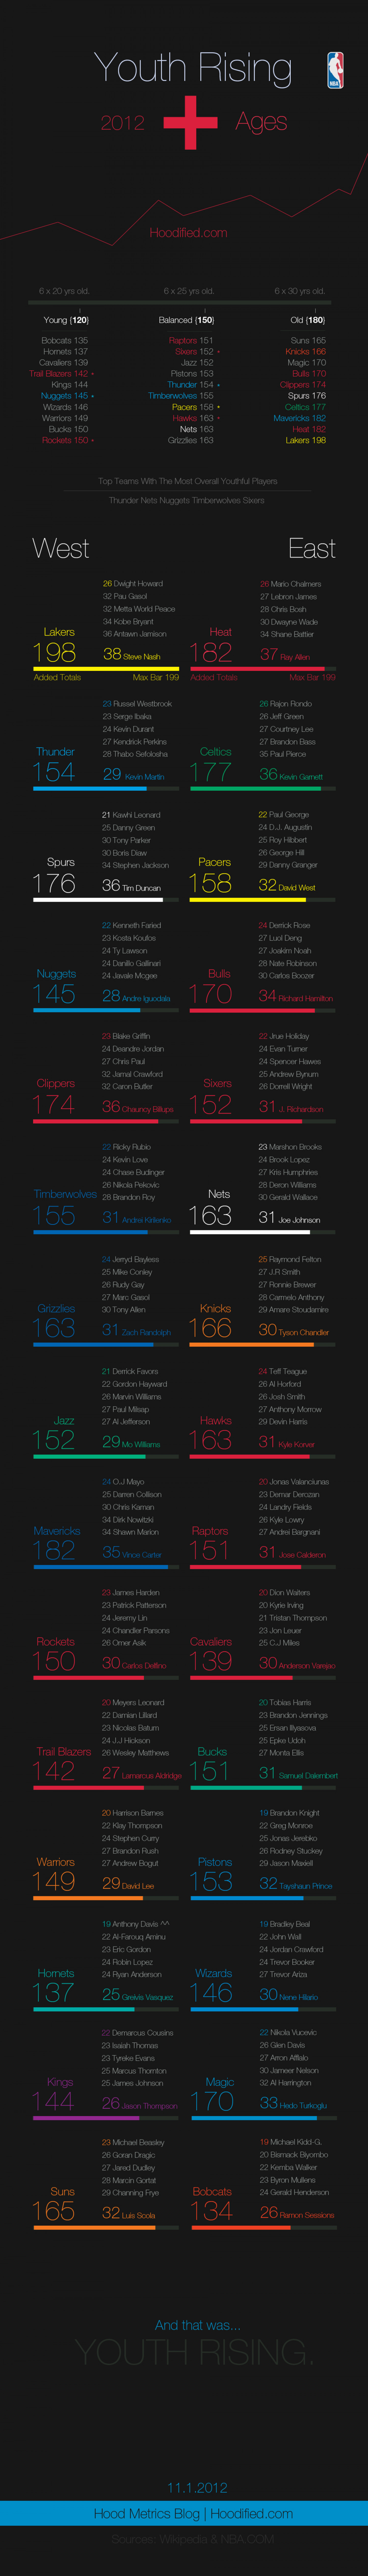 Youth Rising: NBA 2012 (Player Ages) Infographic